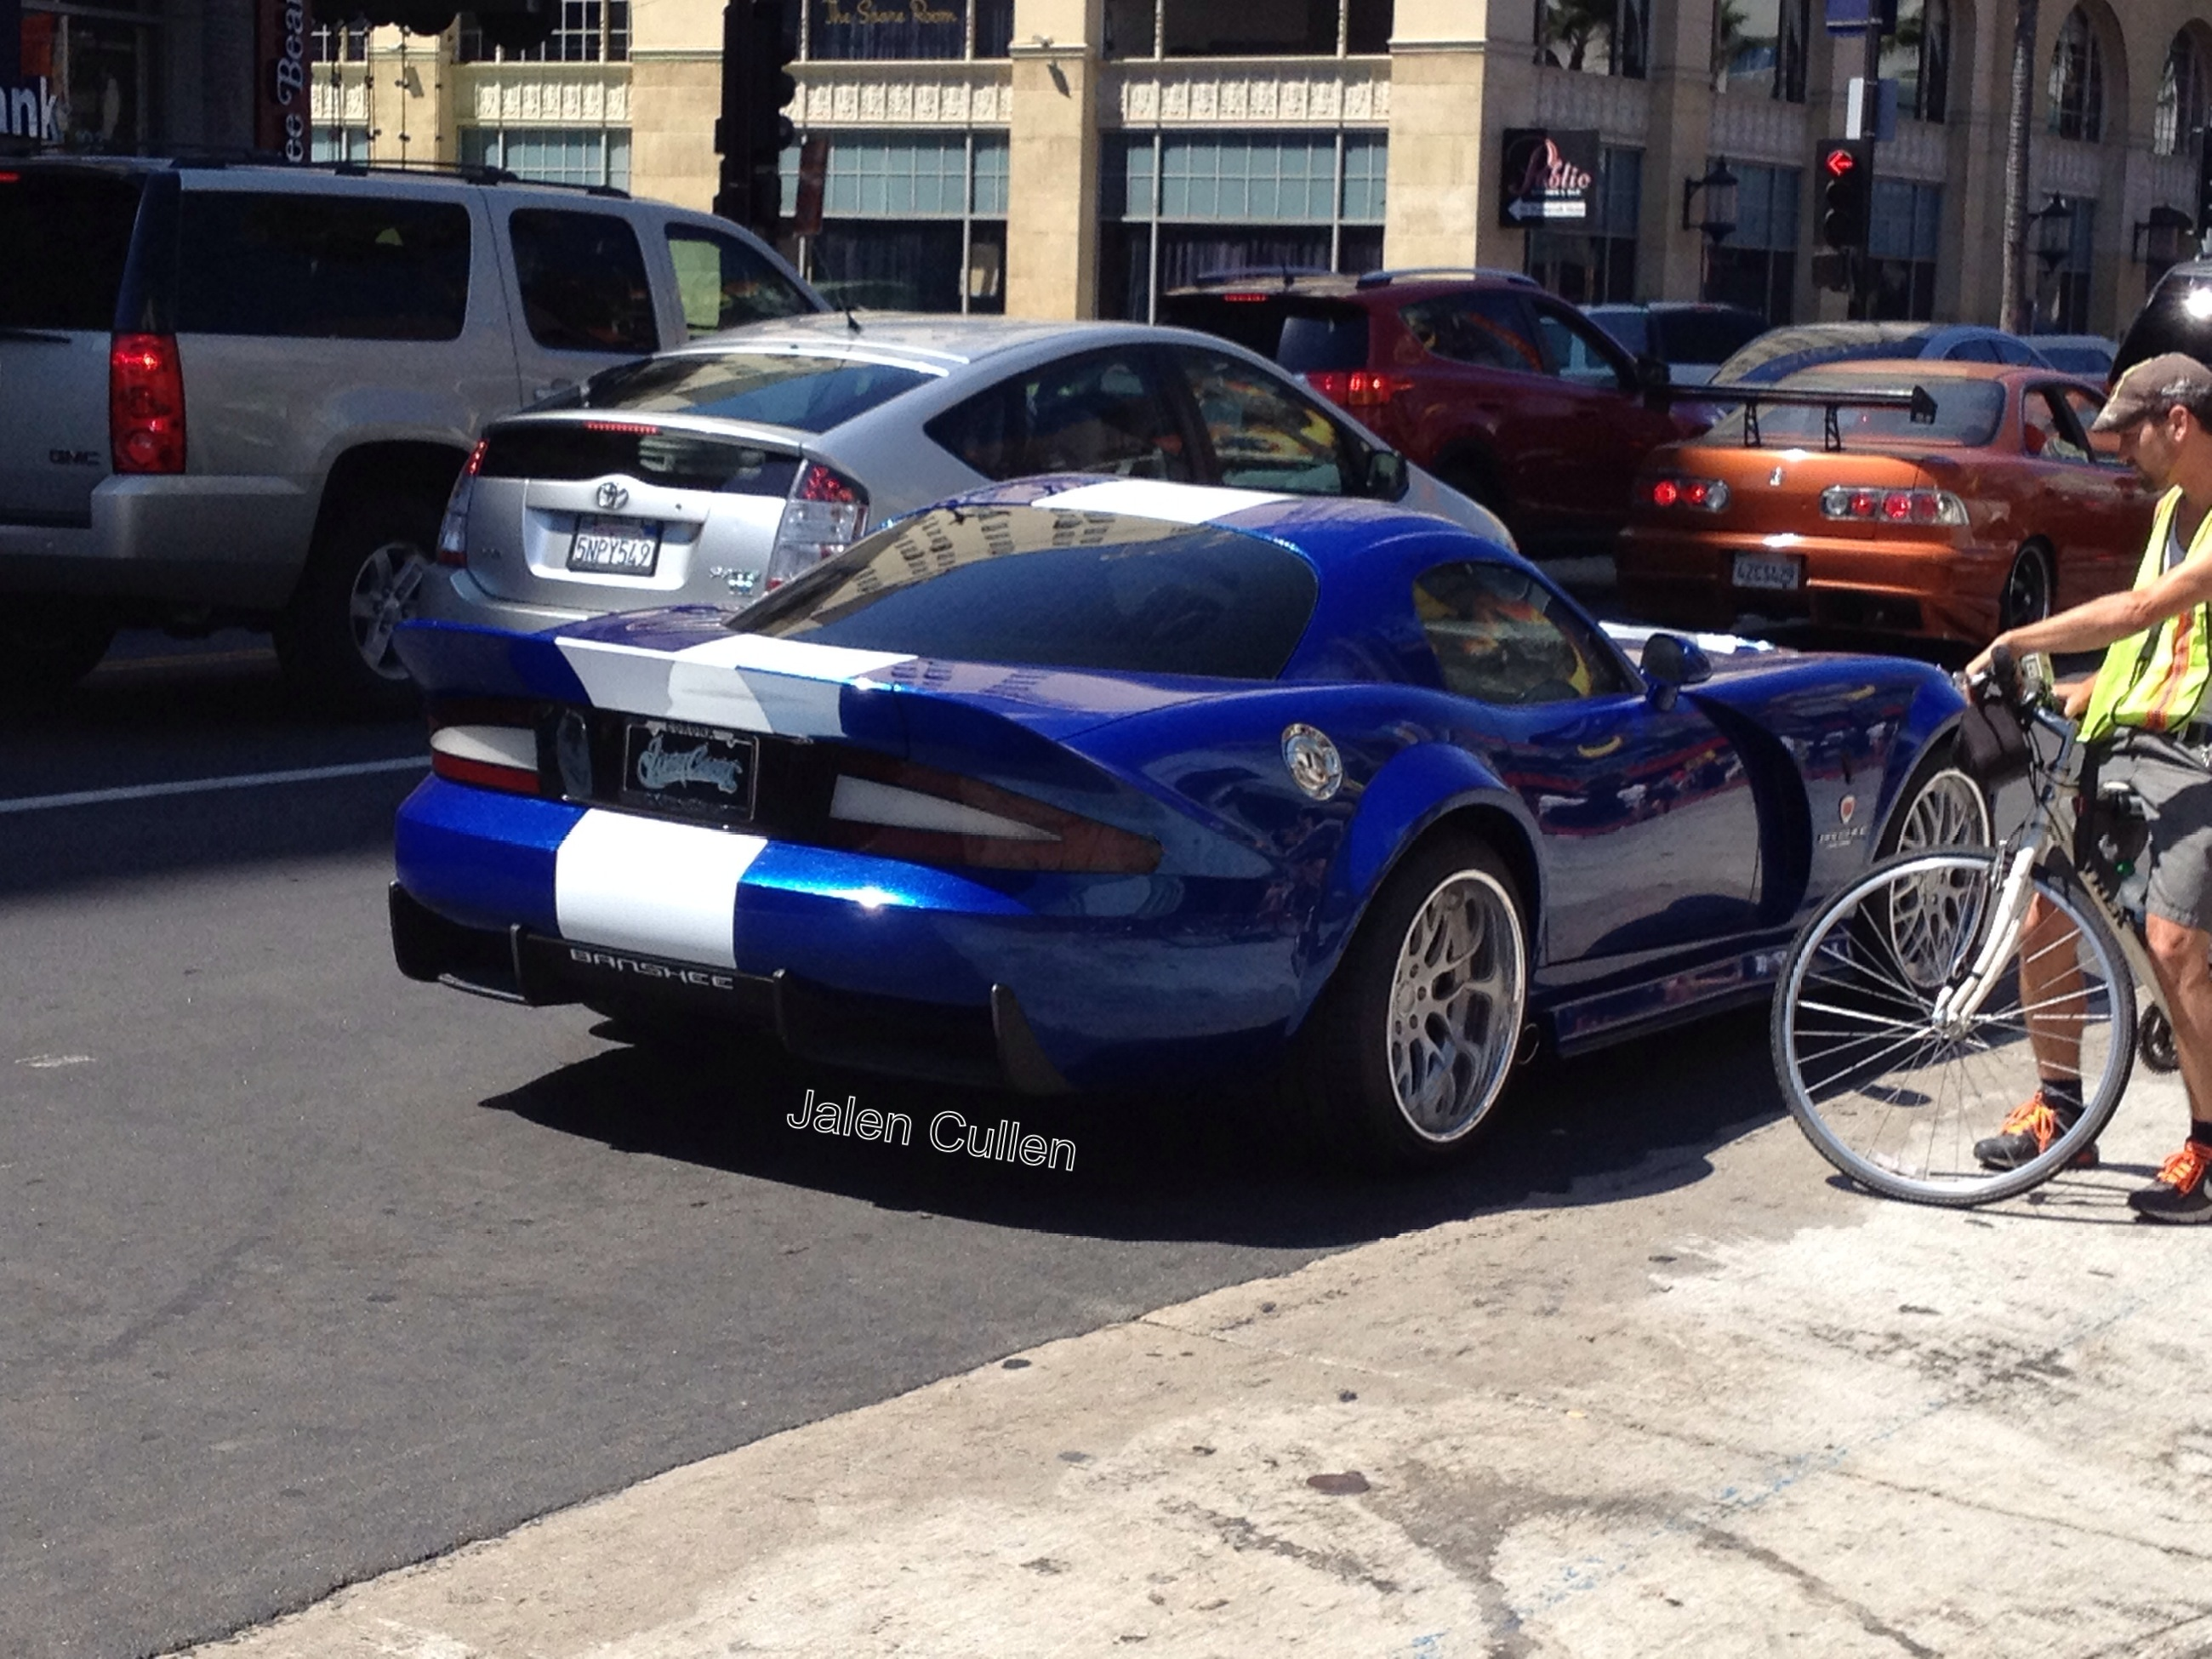 Gta 5 monroe customization online dating 7